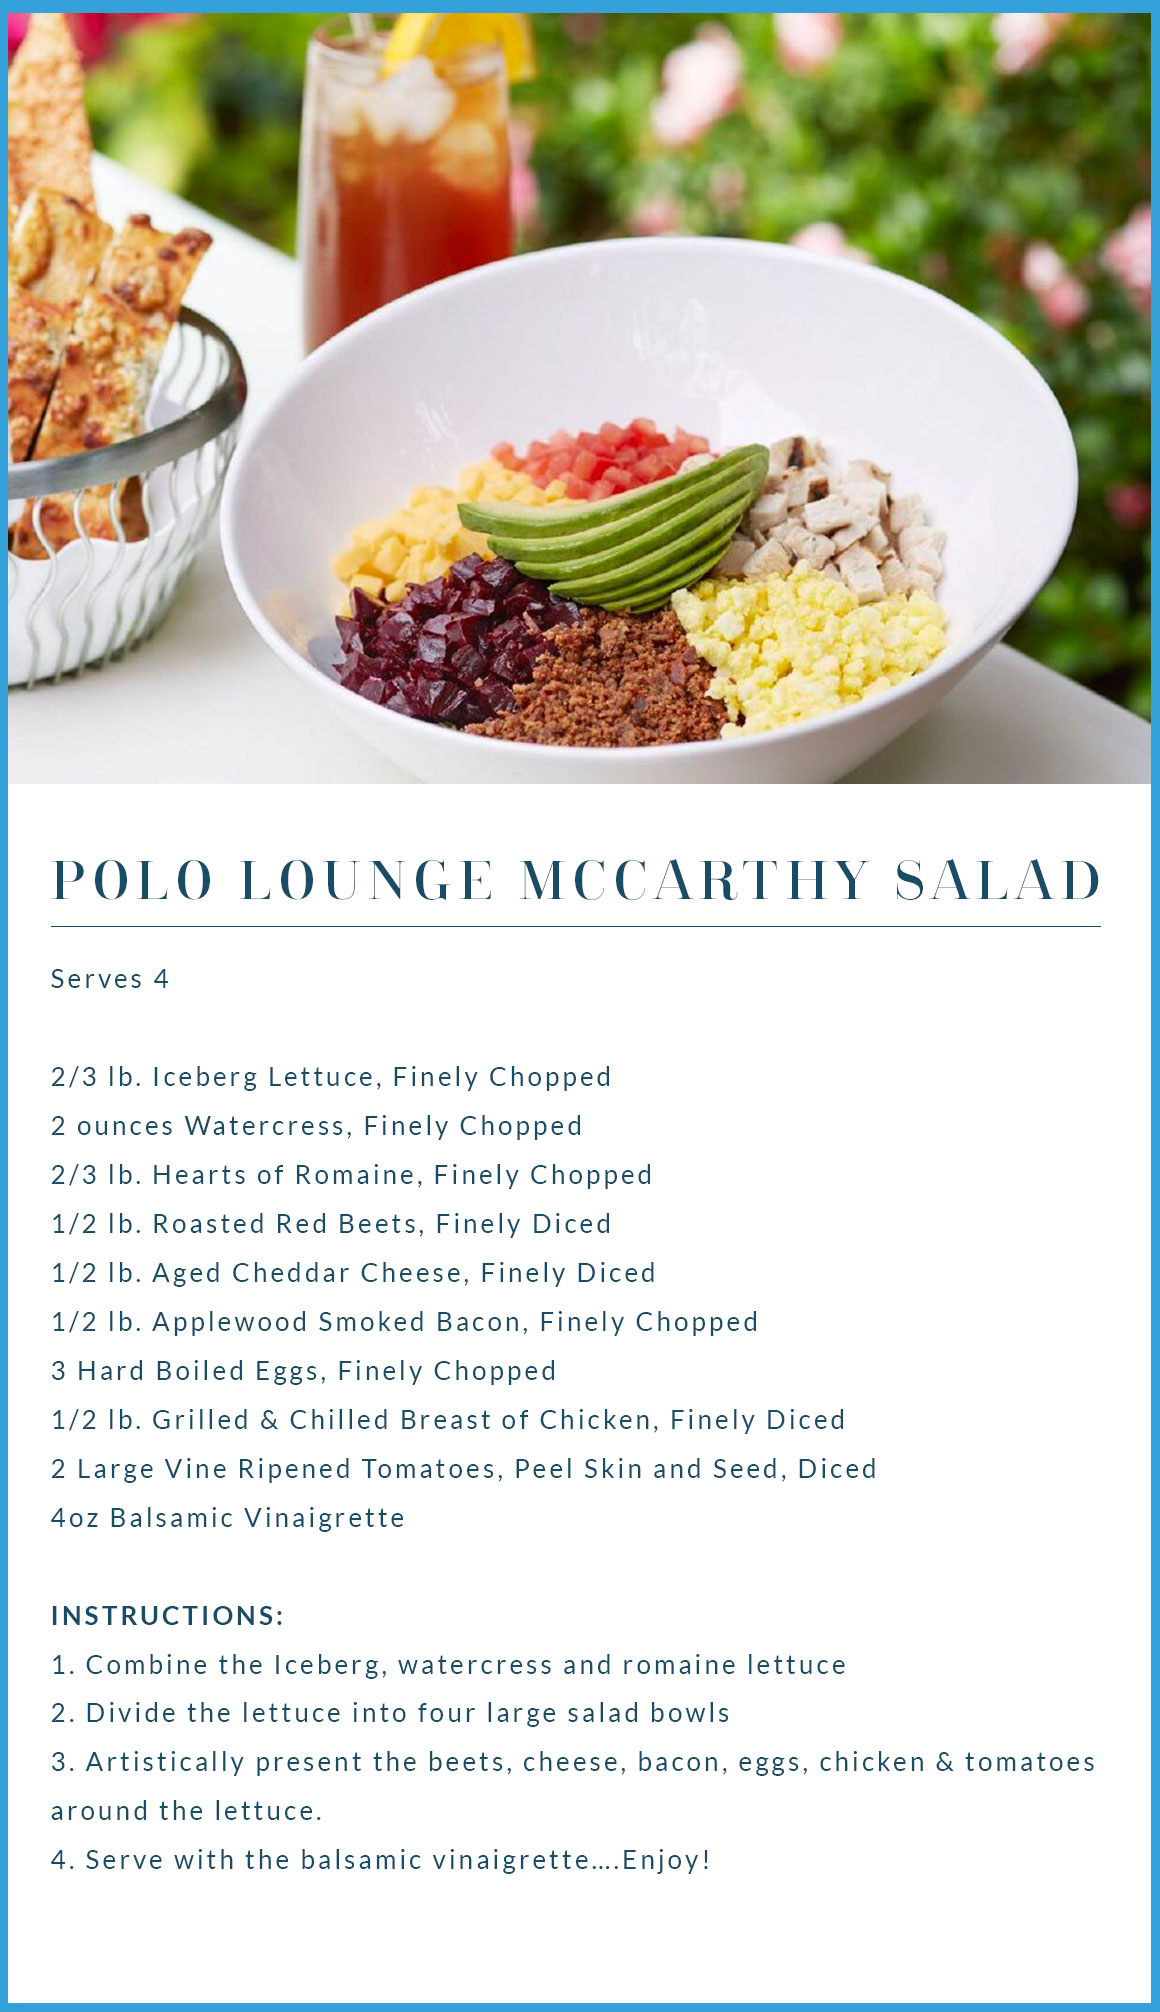 BEST EVER Salad Recipe: The Famous McCarthy Salad at the Beverly Hills Hotel - OMG This salad recipe is so good!! ********* Healthy salad recipe | Best Ever Salad Recipe | Beverly Hills Hotel McCarthy Salad recipe | Polo Lounge Beverly Hills McCarthy Salad | Whole 30 | Paleo Salad